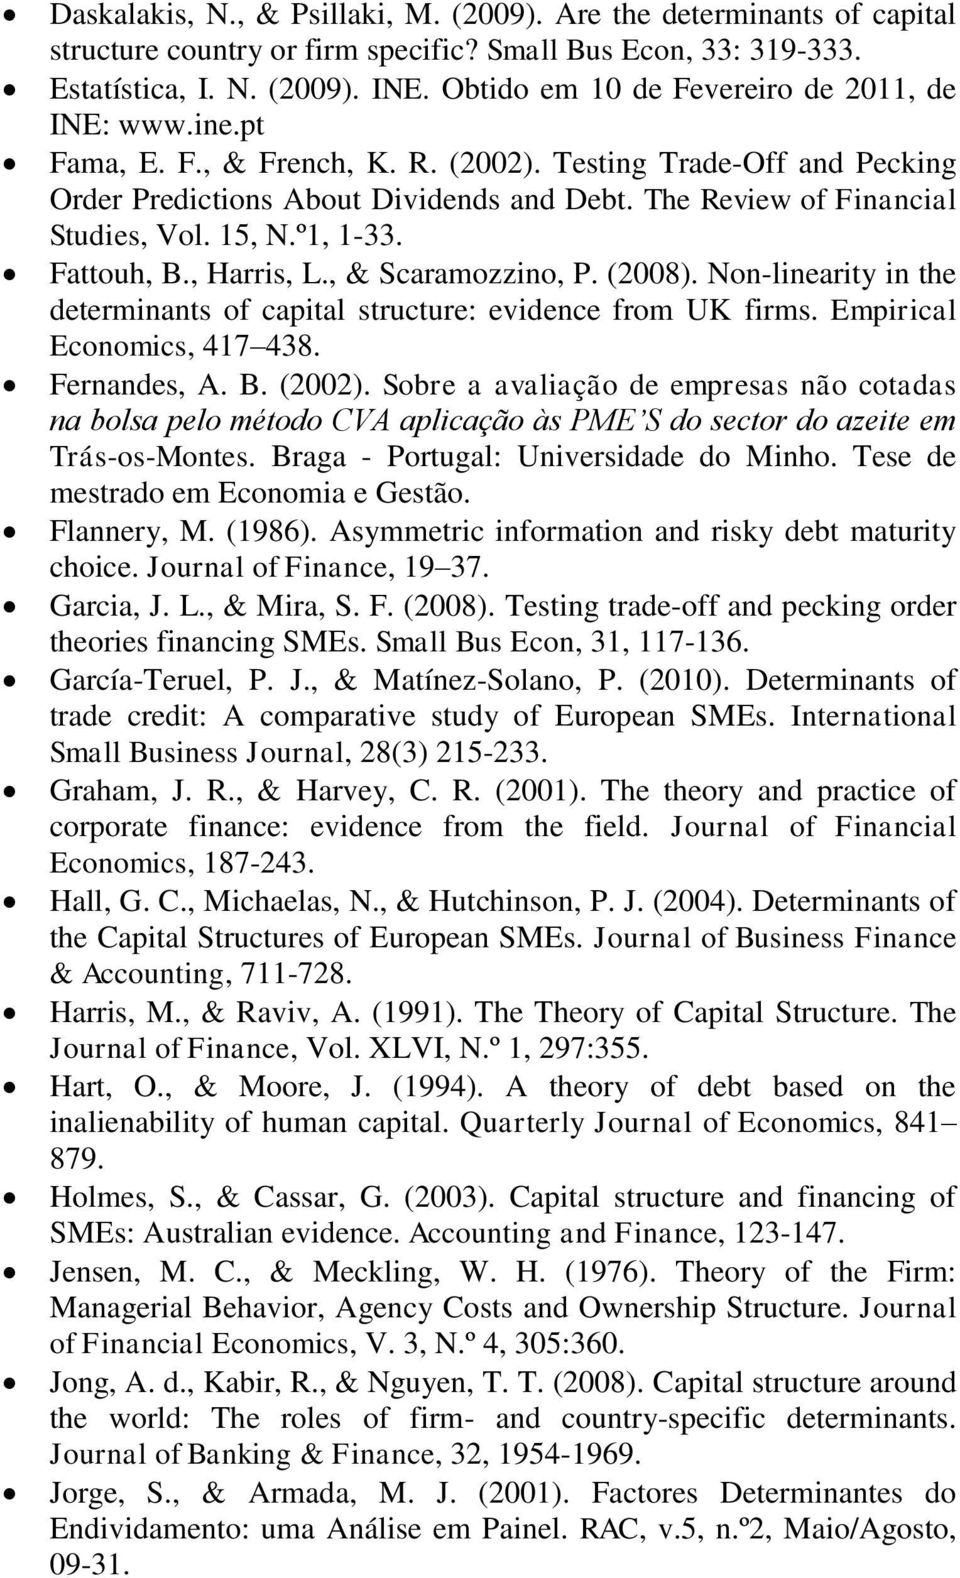 The Review of Financial Studies, Vol. 15, N.º1, 1-33. Fattouh, B., Harris, L., & Scaramozzino, P. (2008). Non-linearity in the determinants of capital structure: evidence from UK firms.